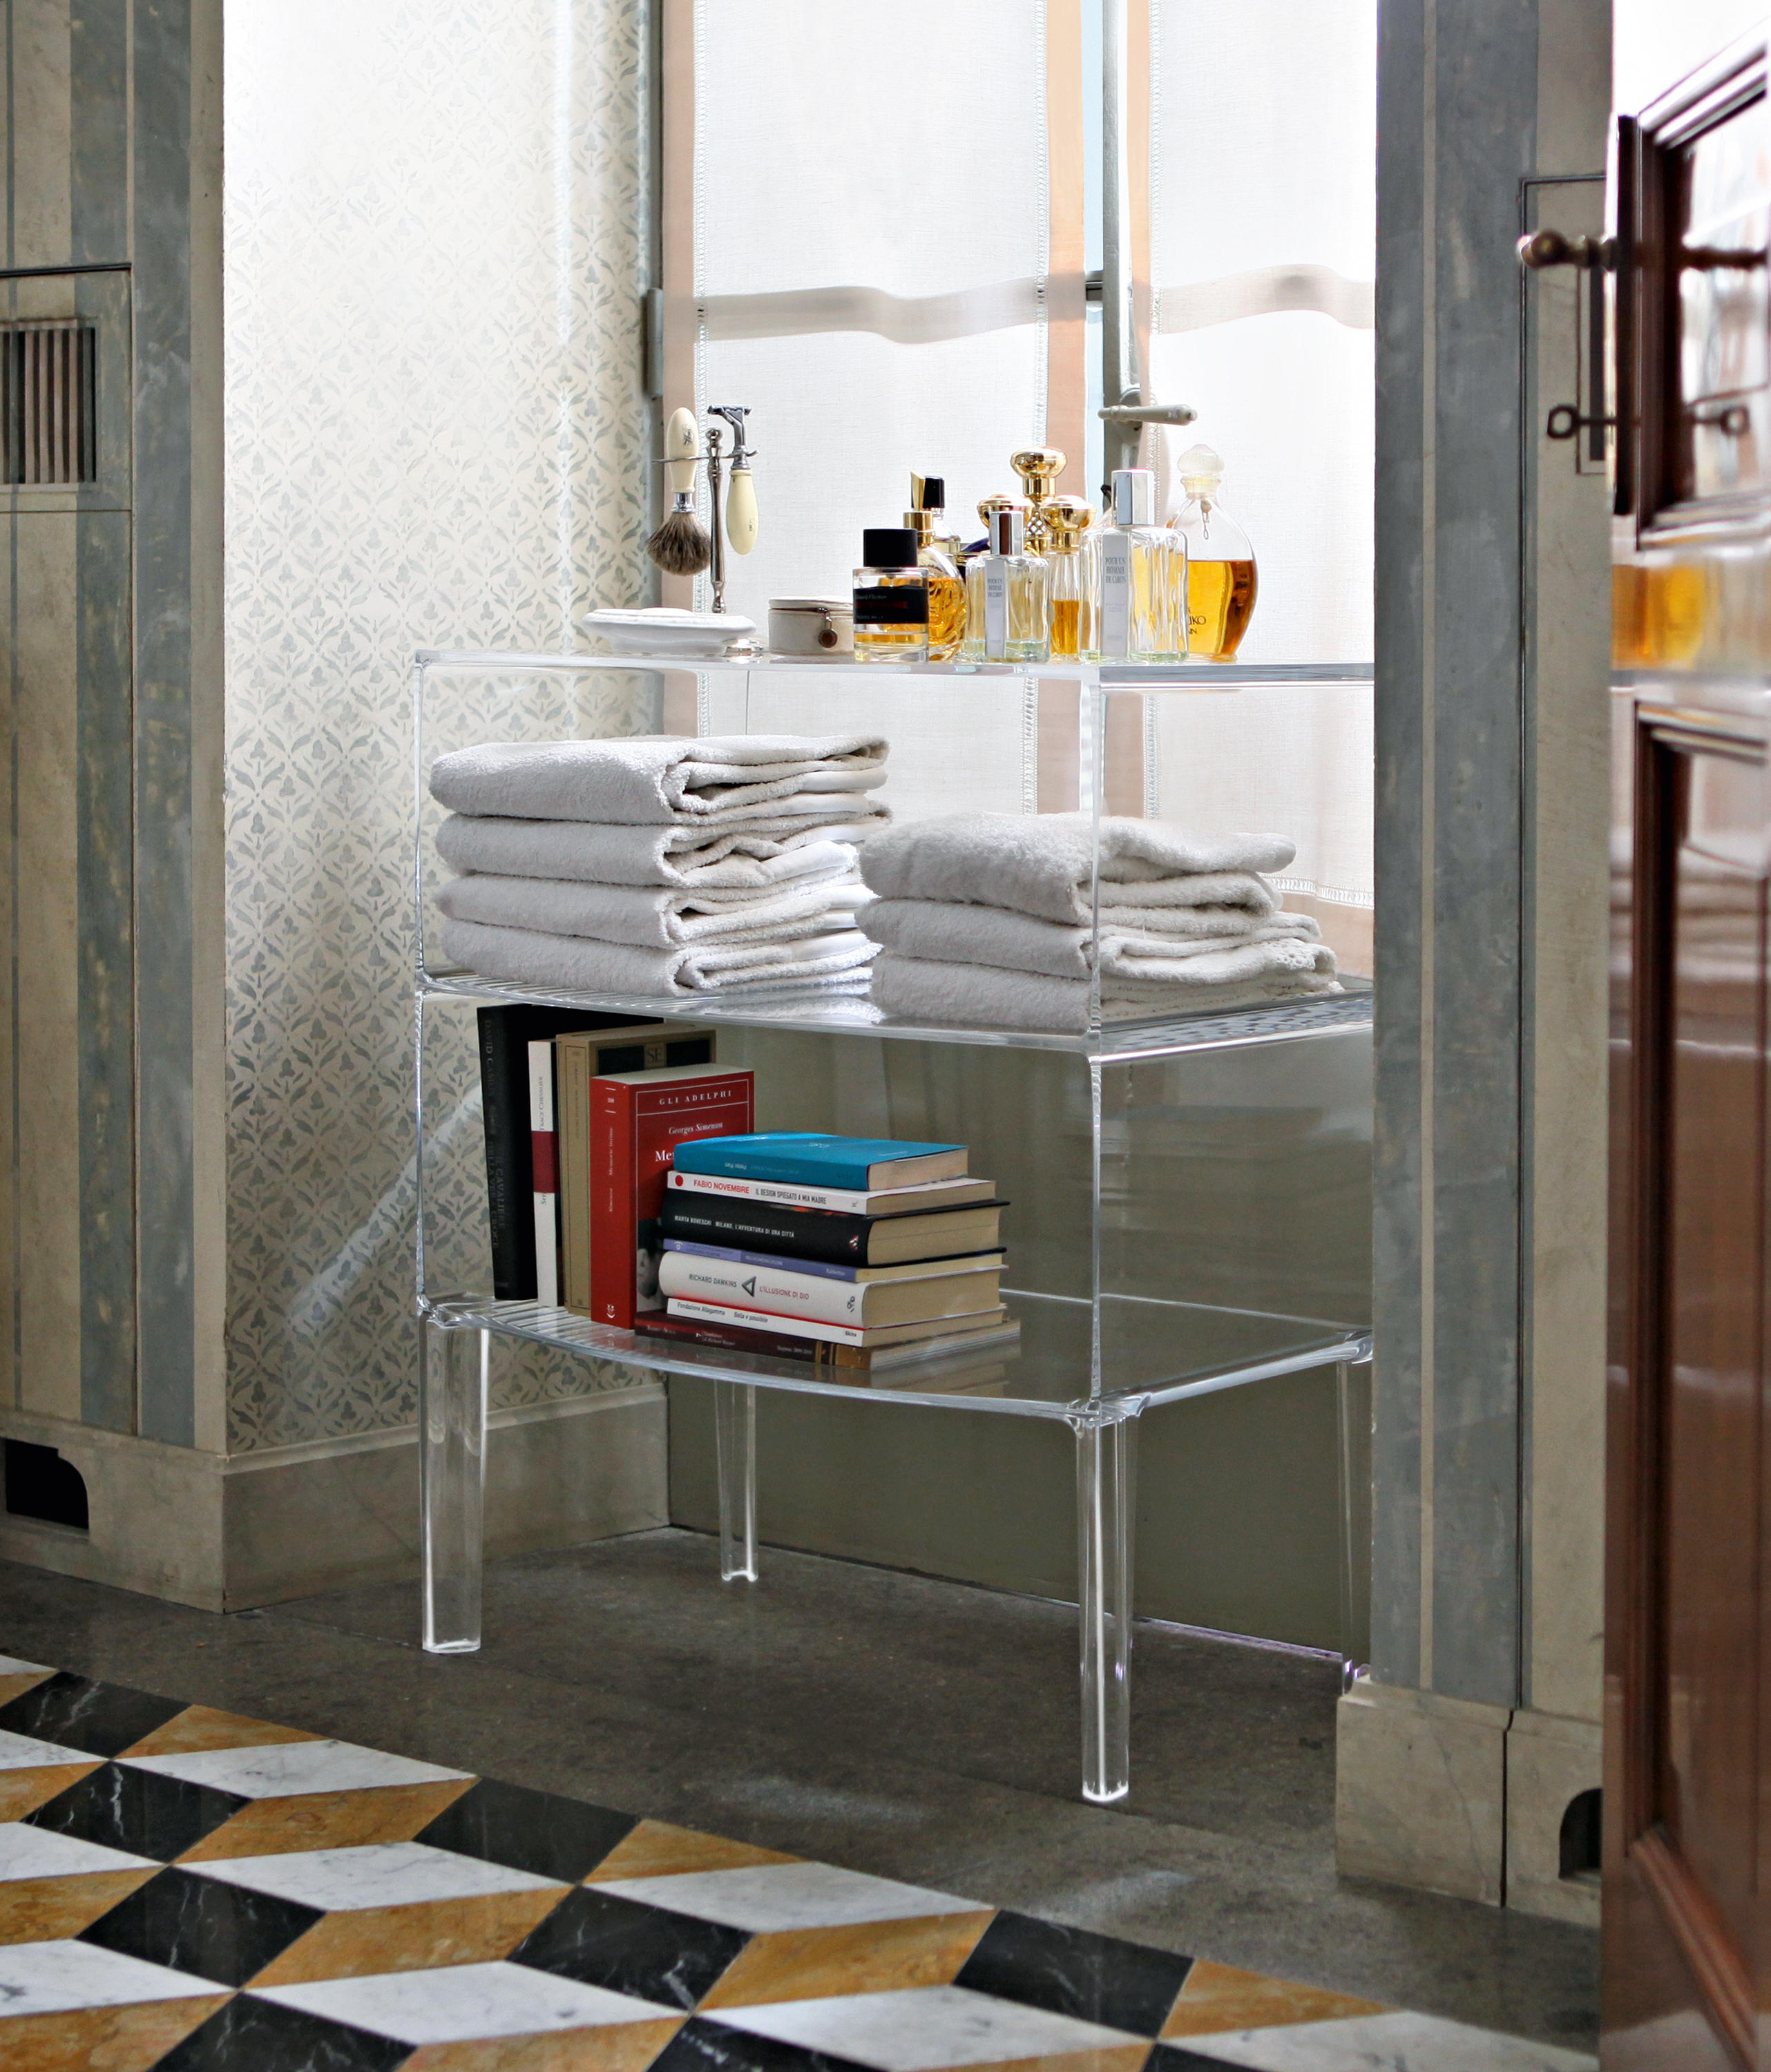 Kartell Möbel Small Ghost Buster & Designermöbel | Architonic